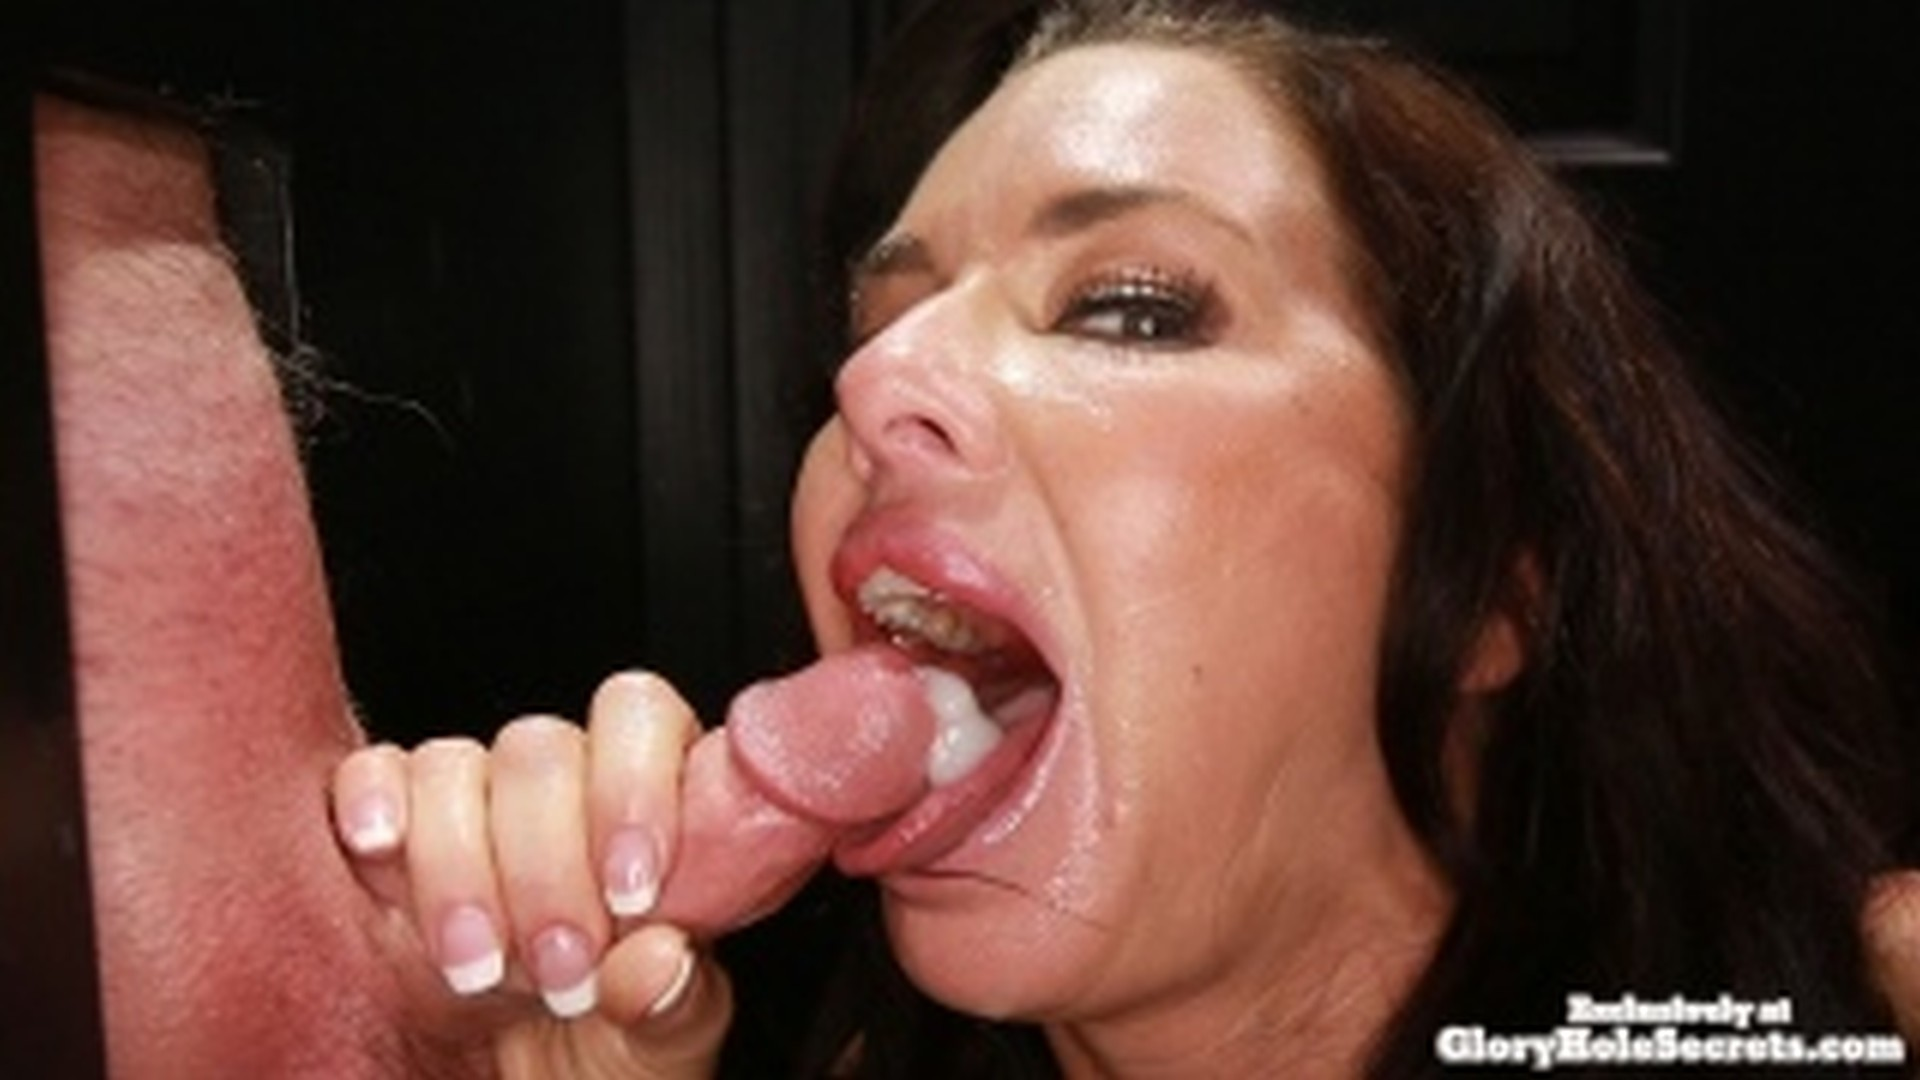 She loves sucking balls and licking assholes 8